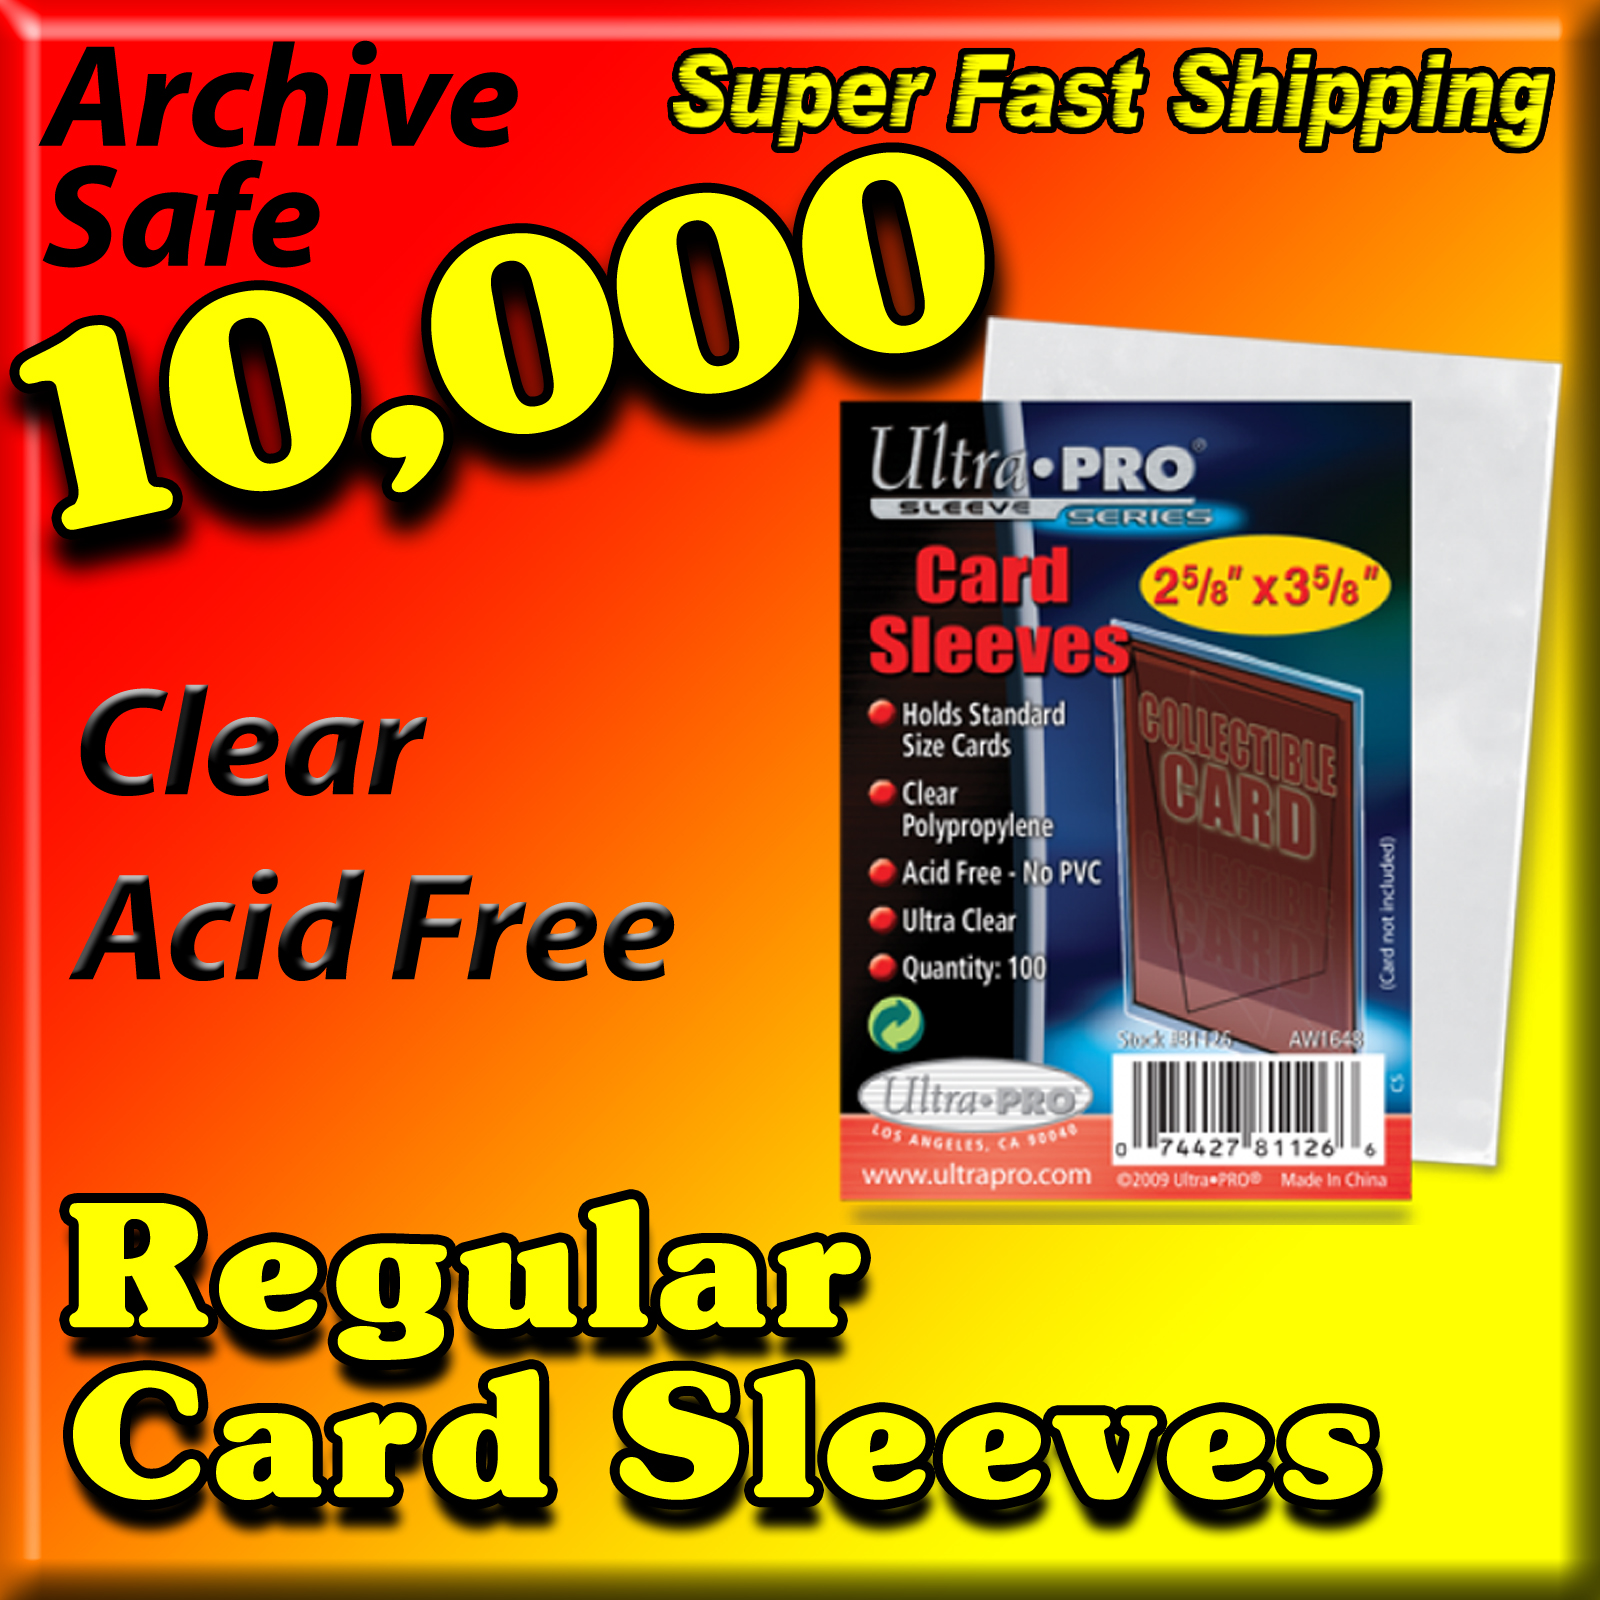 Ultra Pro Card Sleeves -10,000- USA ONLY